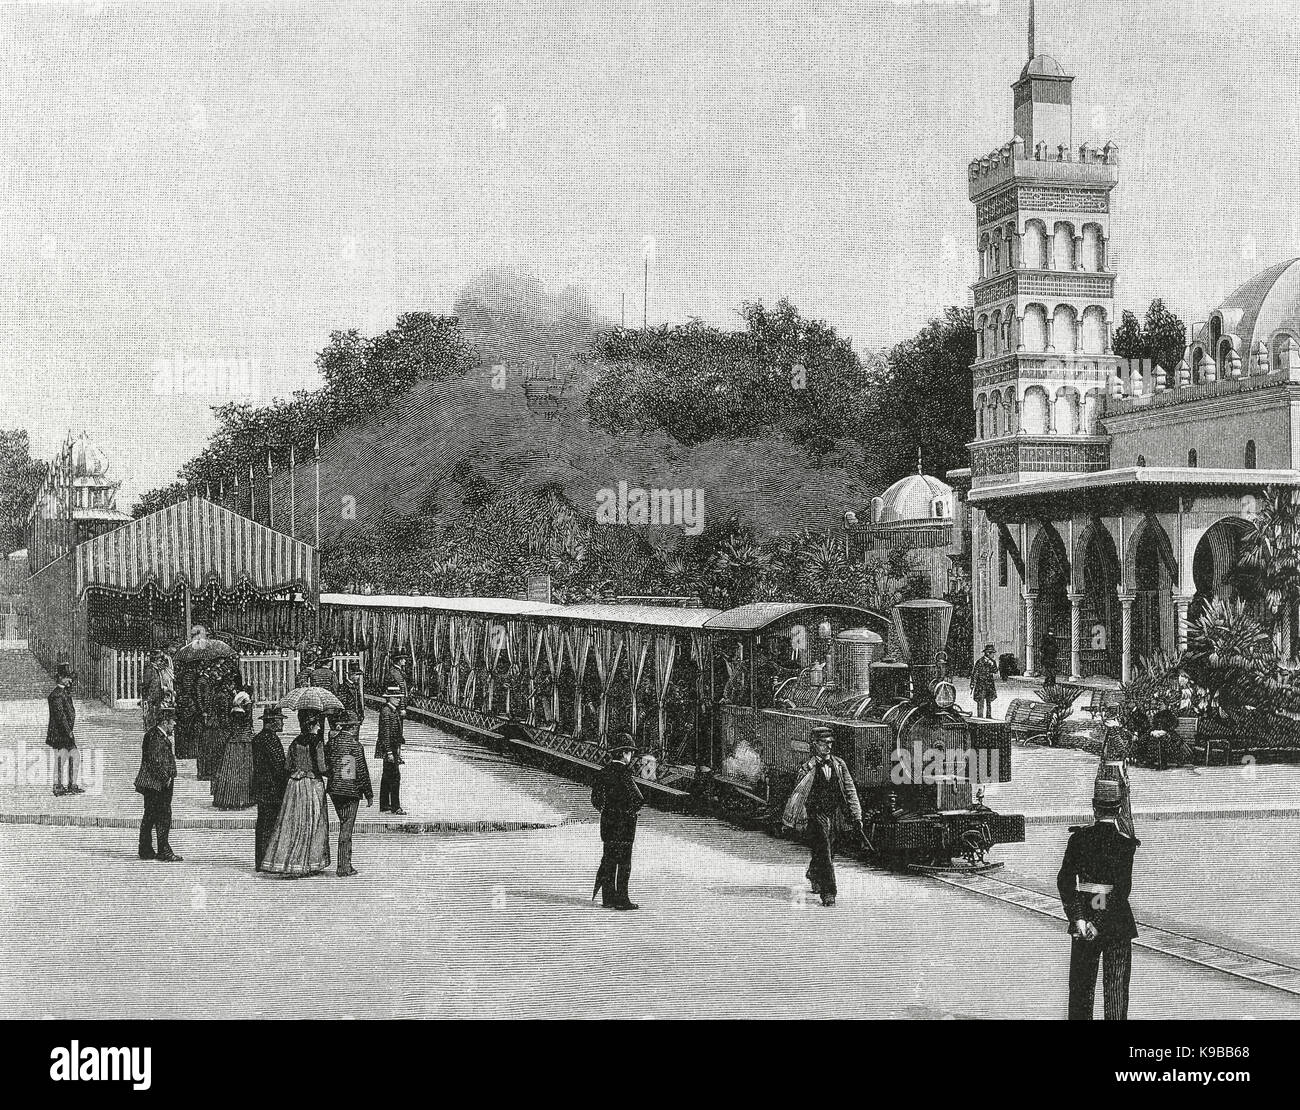 France. Paris. Universal Exhibition of 1889. Decauville railroad train at the departure station. Esplanade of the - Stock Image